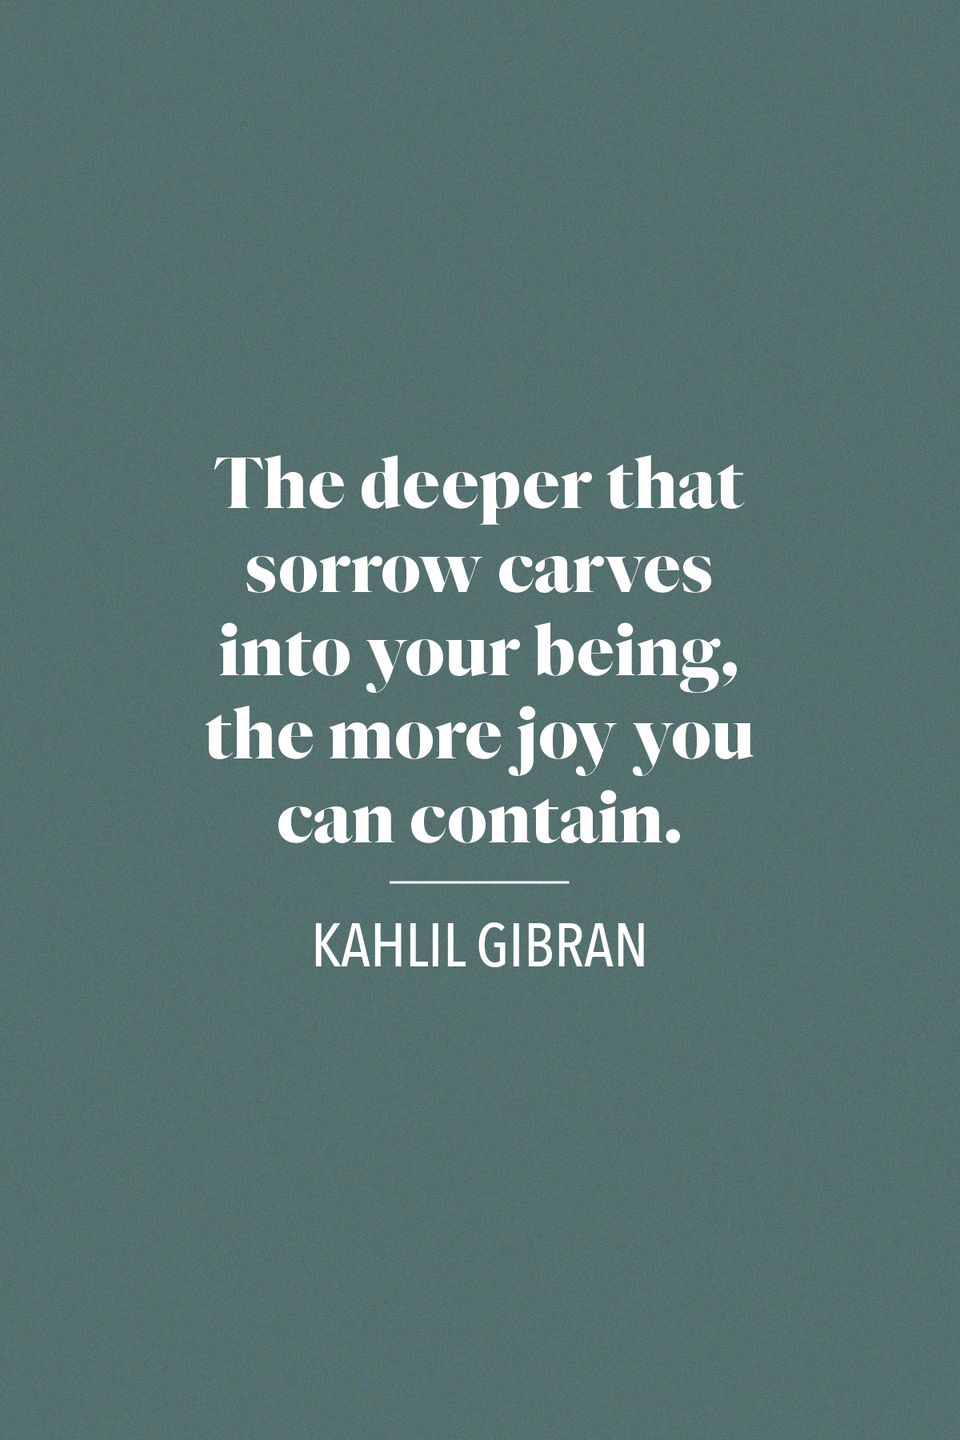 "<p>Kahlil Gibran, a Lebanese-American writer who was a key figure in Arabic literary modernization, wrote in his book of poetry <em><a href=""https://www.google.com/books/edition/The_Prophet/GtmGDwAAQBAJ?hl=en&gbpv=1&printsec=frontcover"" rel=""nofollow noopener"" target=""_blank"" data-ylk=""slk:The Prophet"" class=""link rapid-noclick-resp"">The Prophet</a></em>, ""The deeper that sorrow carves into your being, the more joy you can contain.""</p>"